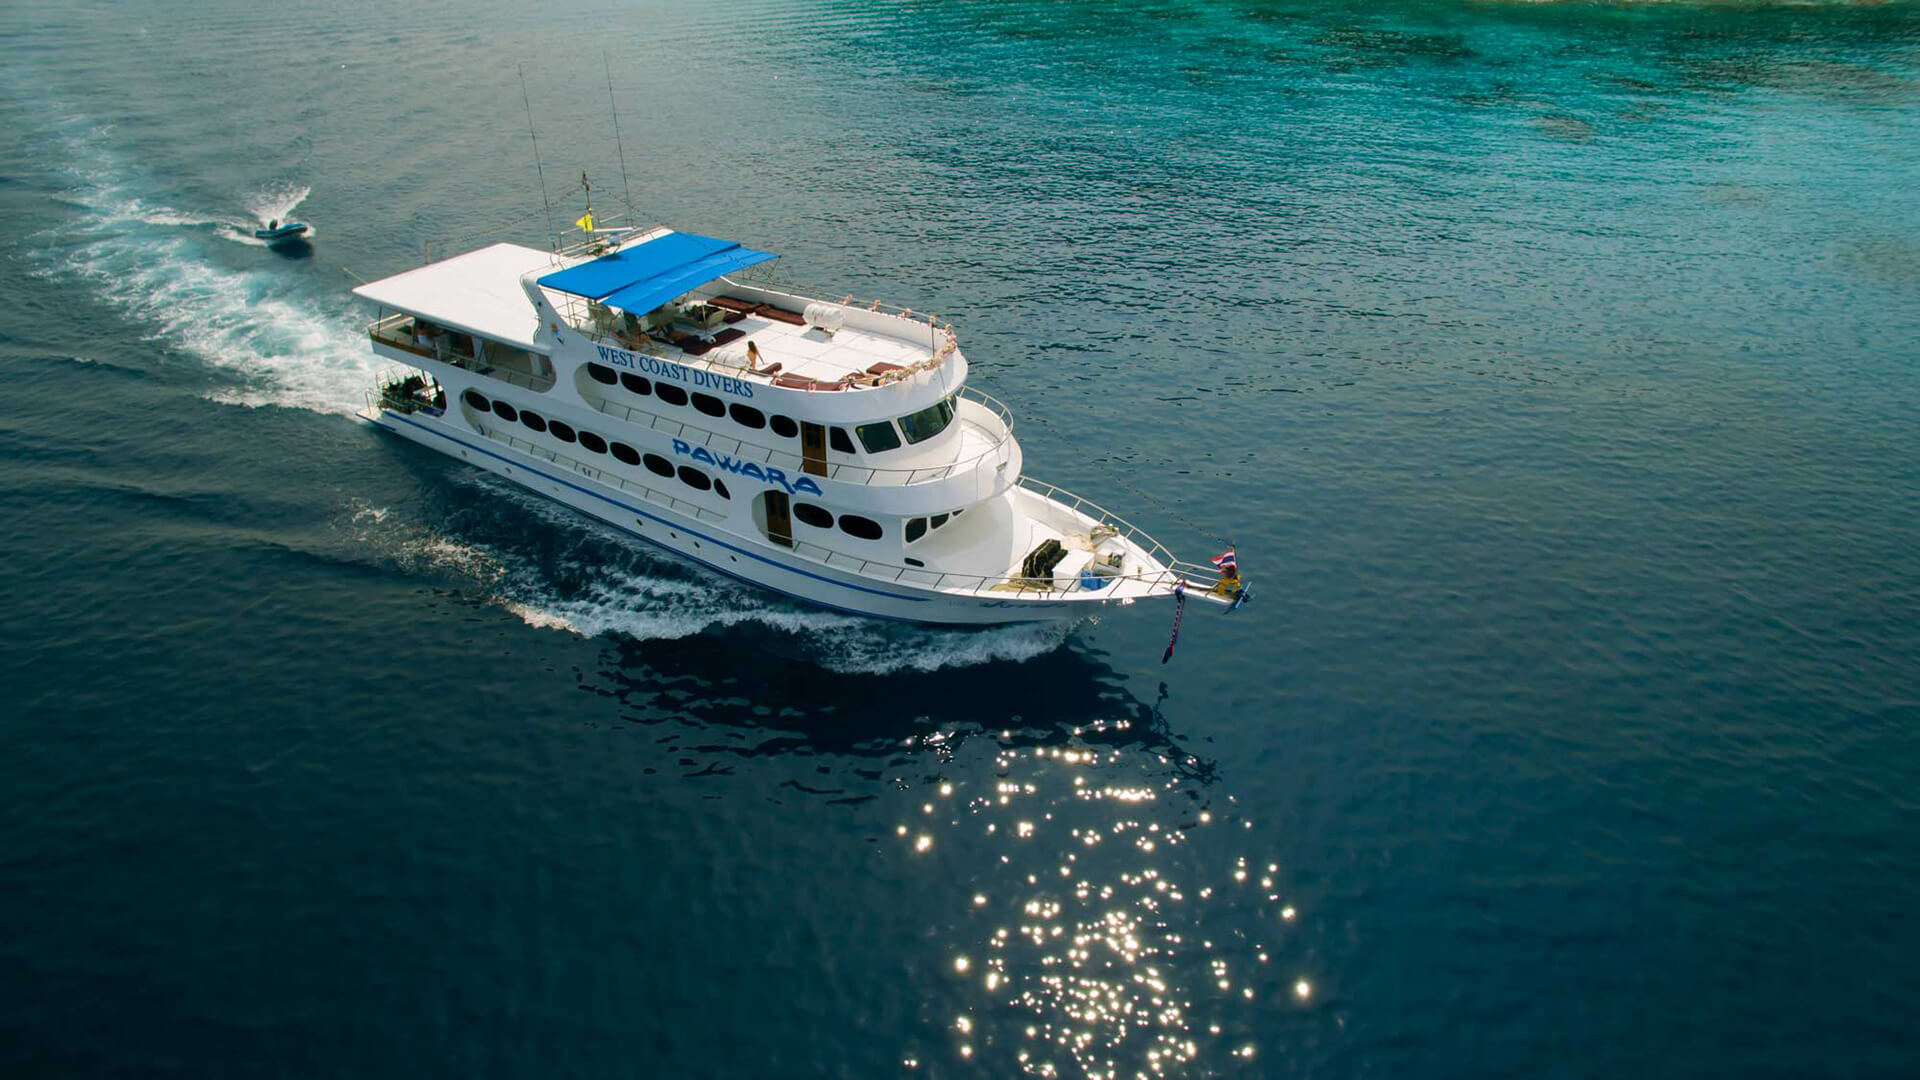 10% Discount On Your 2017/2018 Similan Island Liveaboard With MV Pawara